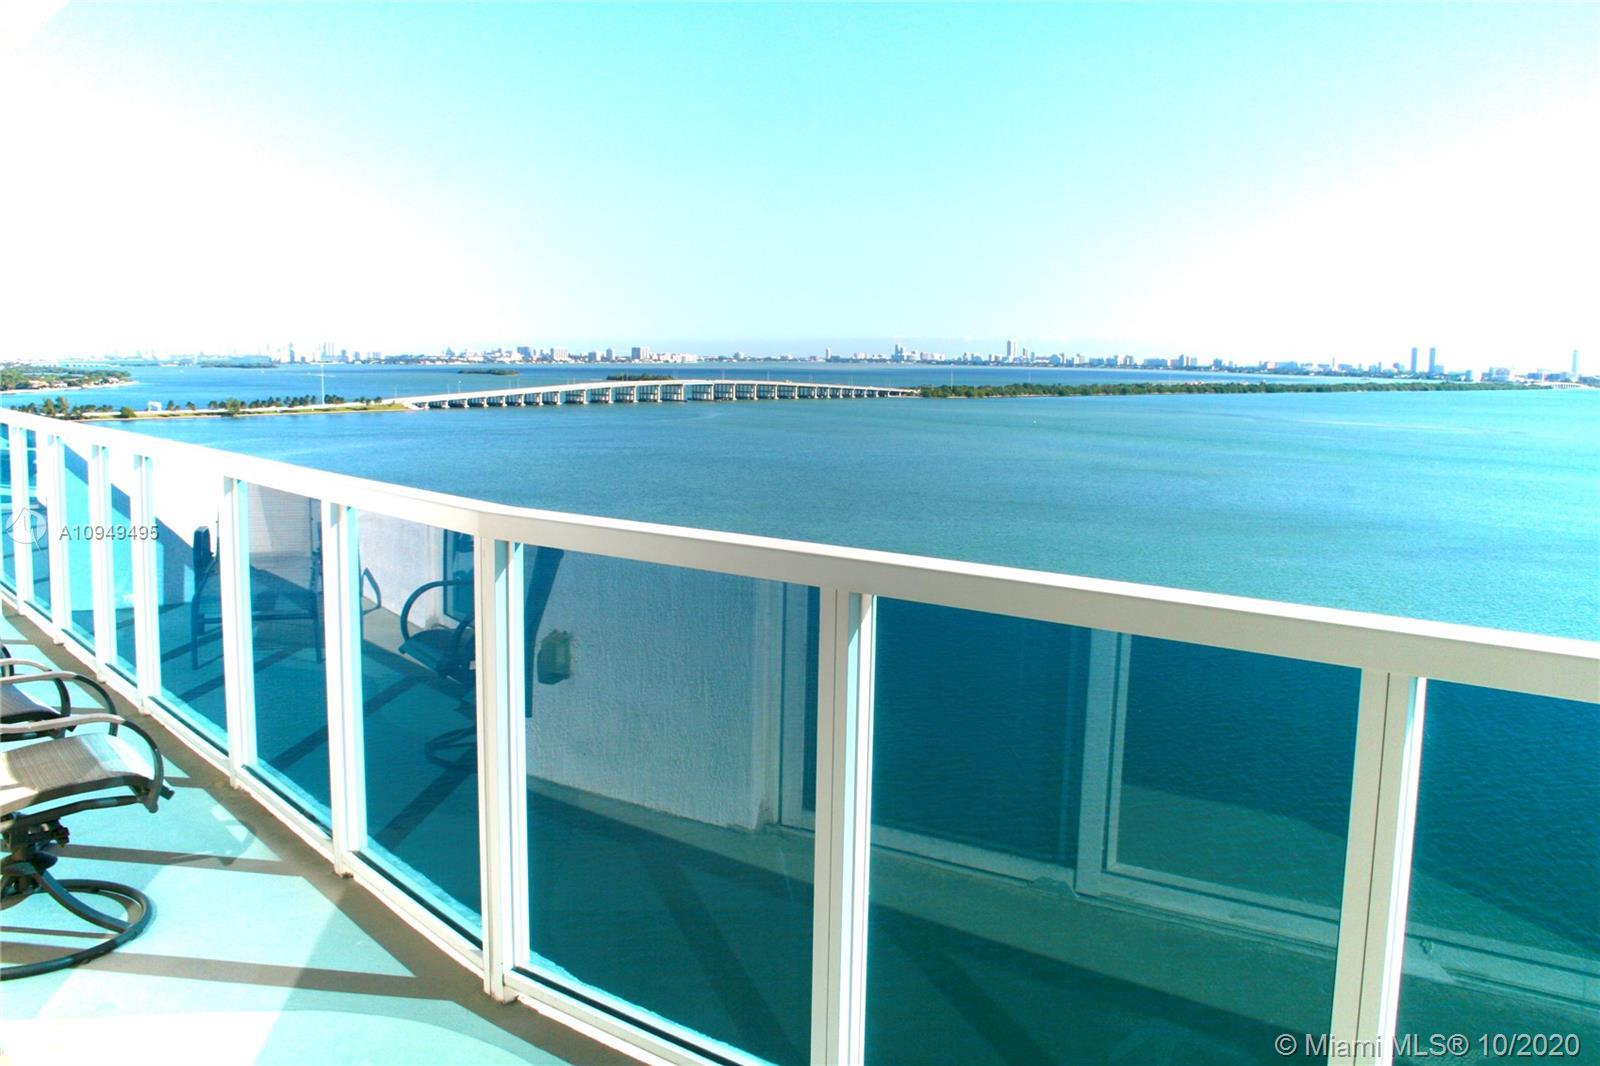 ALL ROOMS with DIRECT BAY VIEWS: two (2) bedrooms + living + dining + kitchen.  PRIVACY: No building